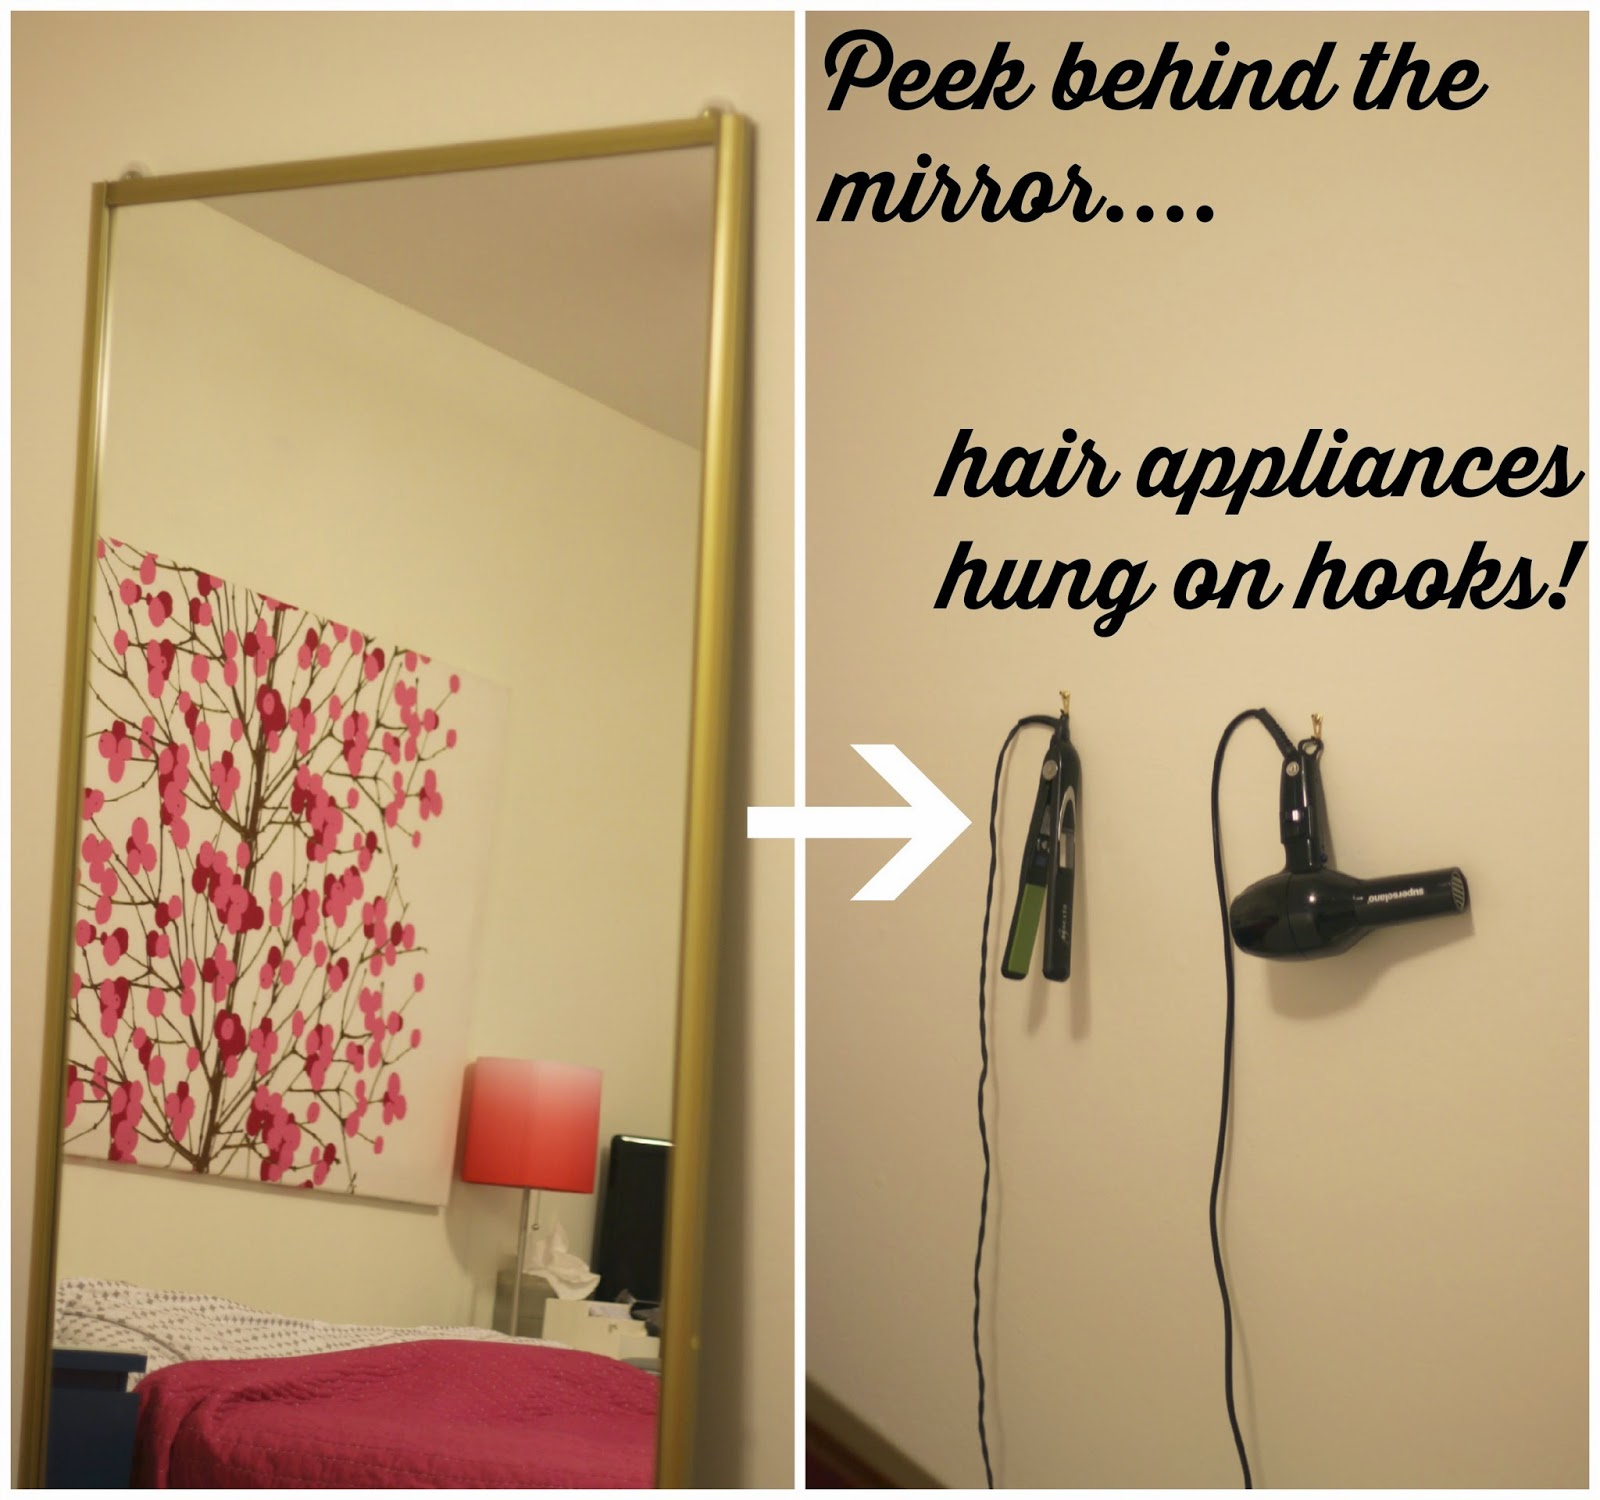 How to store hair appliances